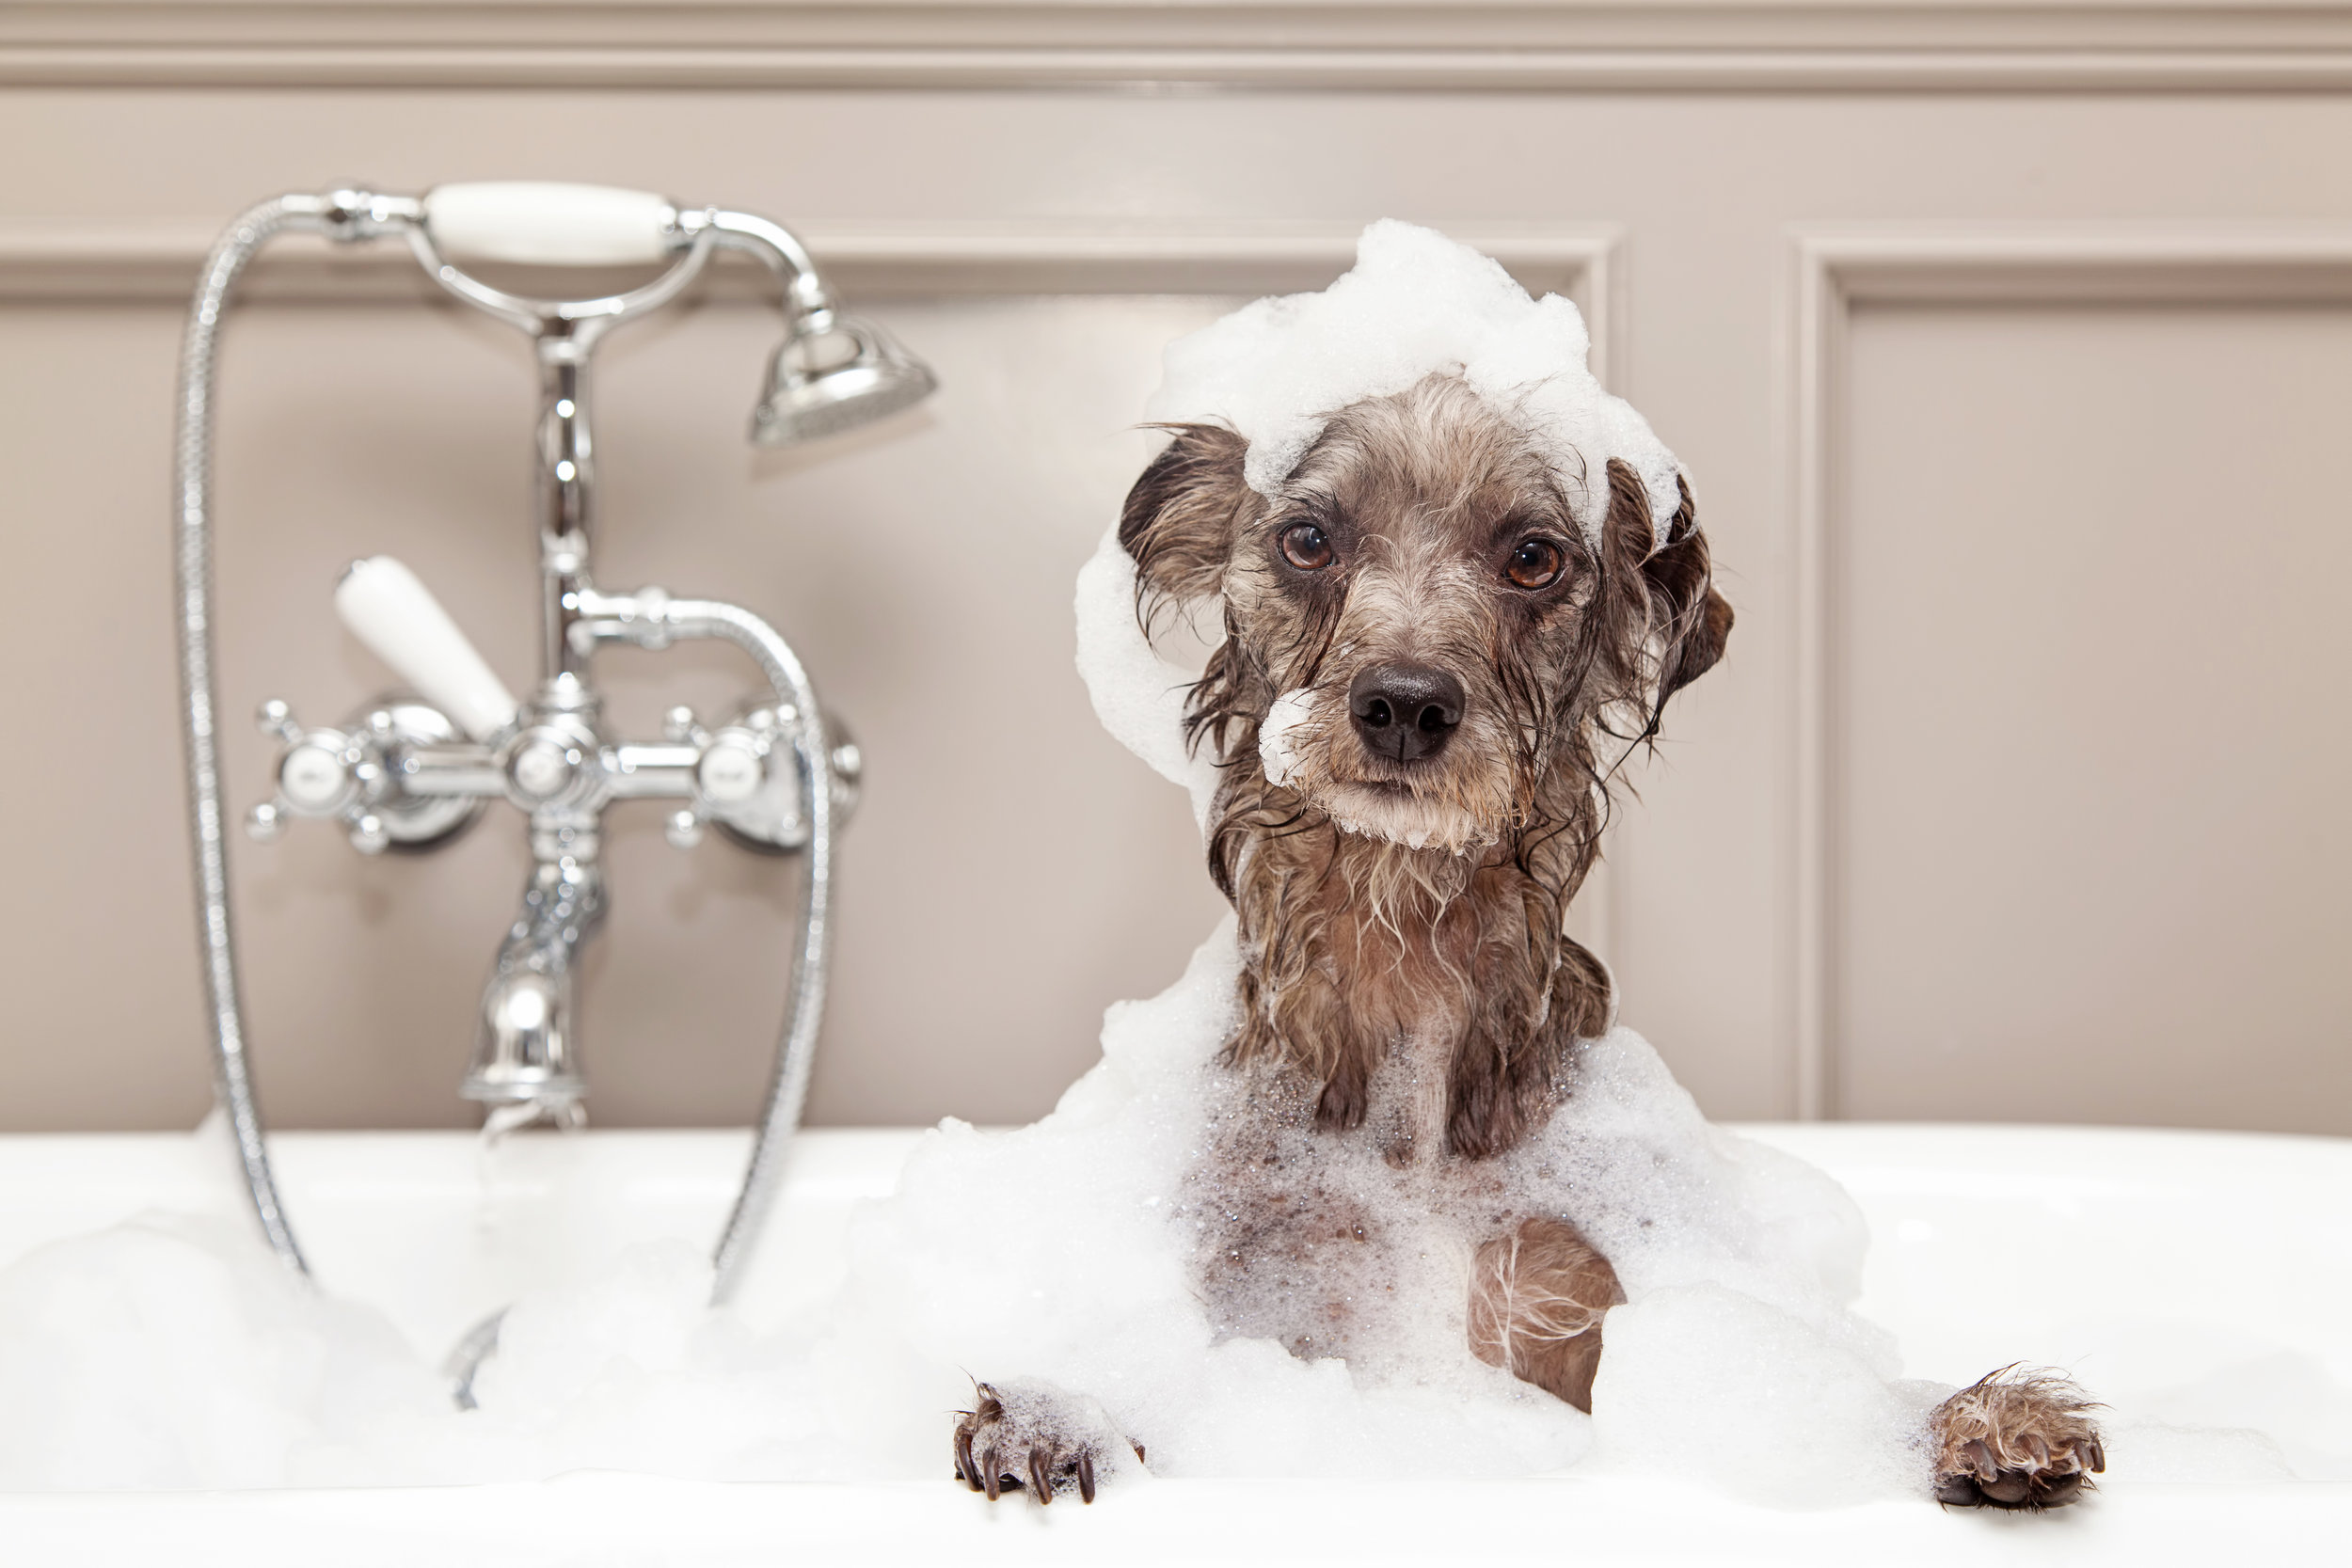 An indulgent bath is definitely stressing this guy out!